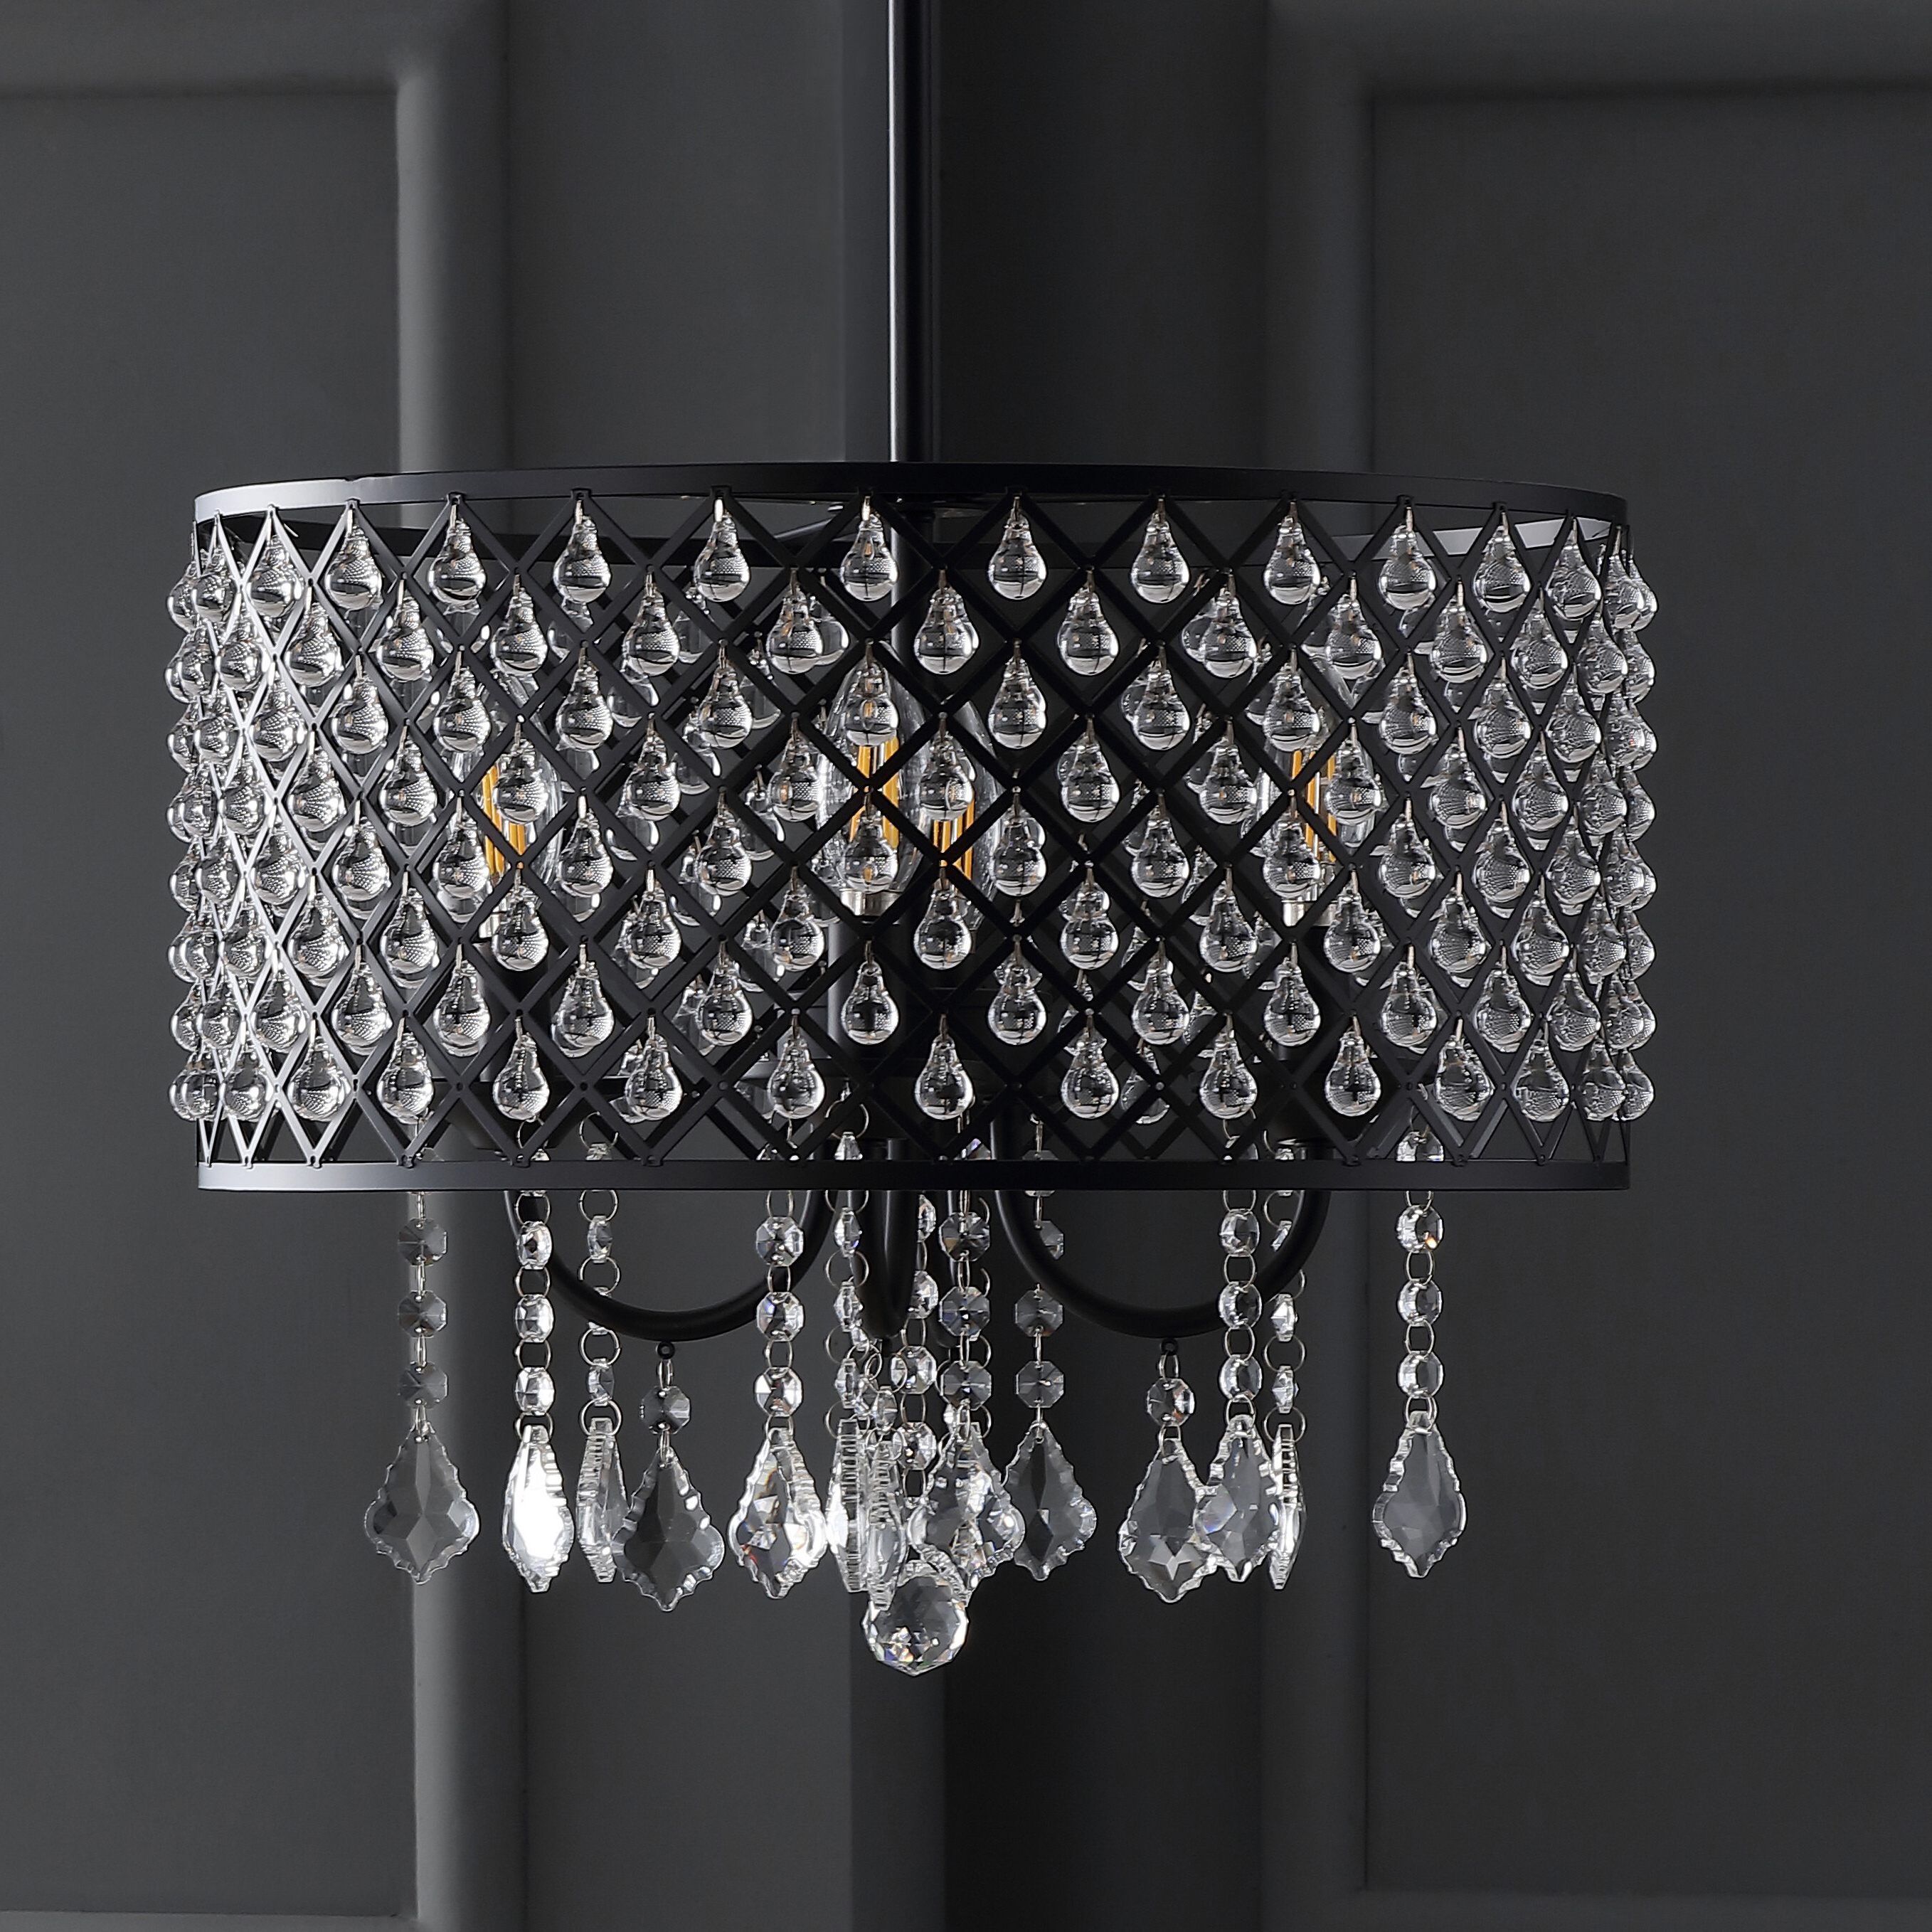 Mckamey 4 Light Crystal Chandeliers Throughout Most Up To Date Collado 4 Light Drum Chandelier (View 12 of 20)